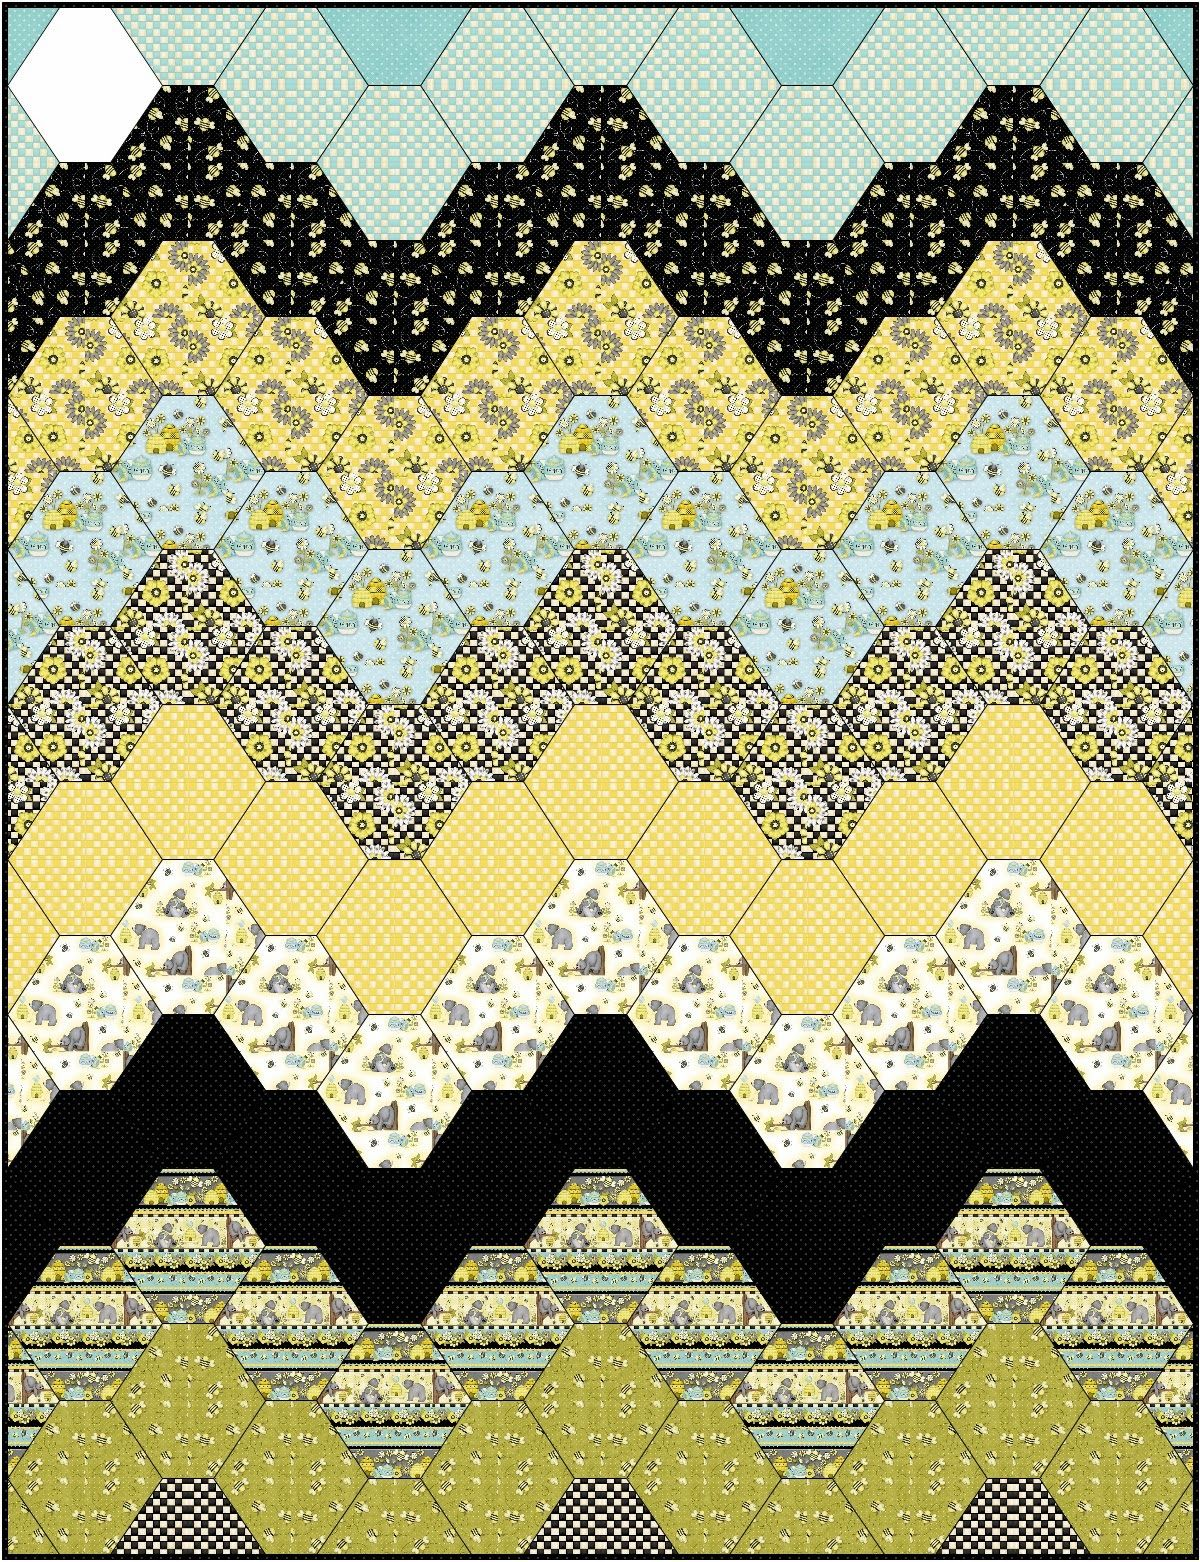 Remember The Old Quot Bargello Quot Needlepoint Patterns From The 70s Quilt Patchwork